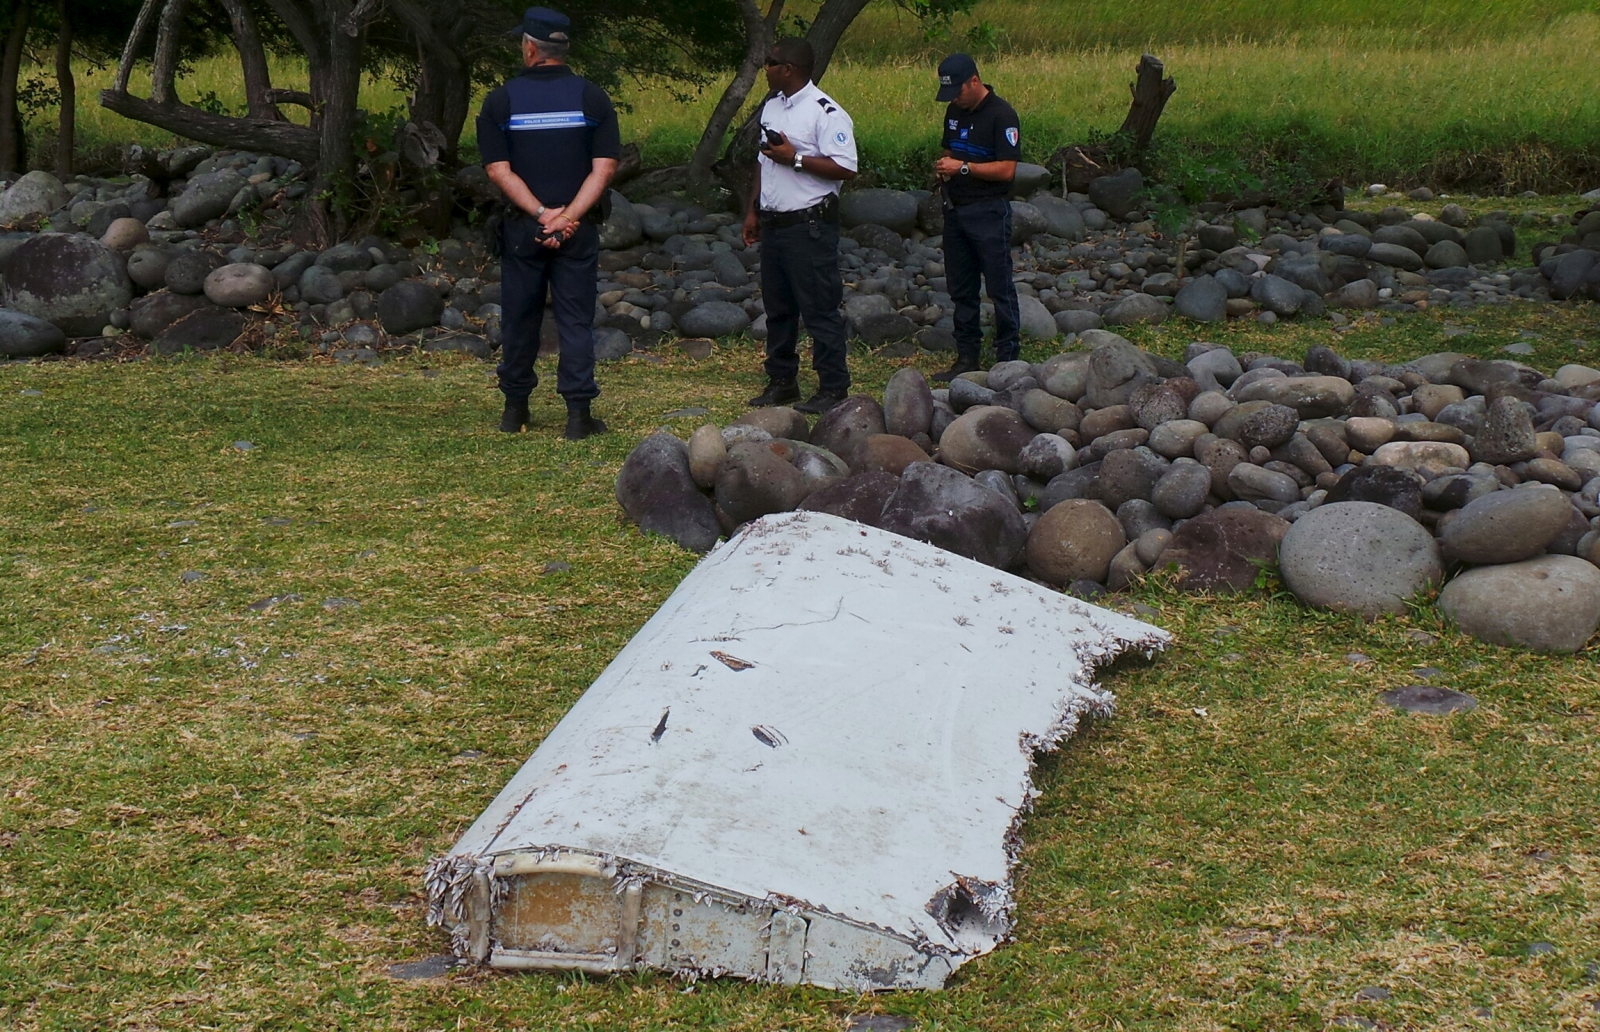 Mh370 what aircraft wreckage has been found from missing malaysia a fragment of aircraft wing called a flaperon confirmed as from mh370 reuters publicscrutiny Gallery